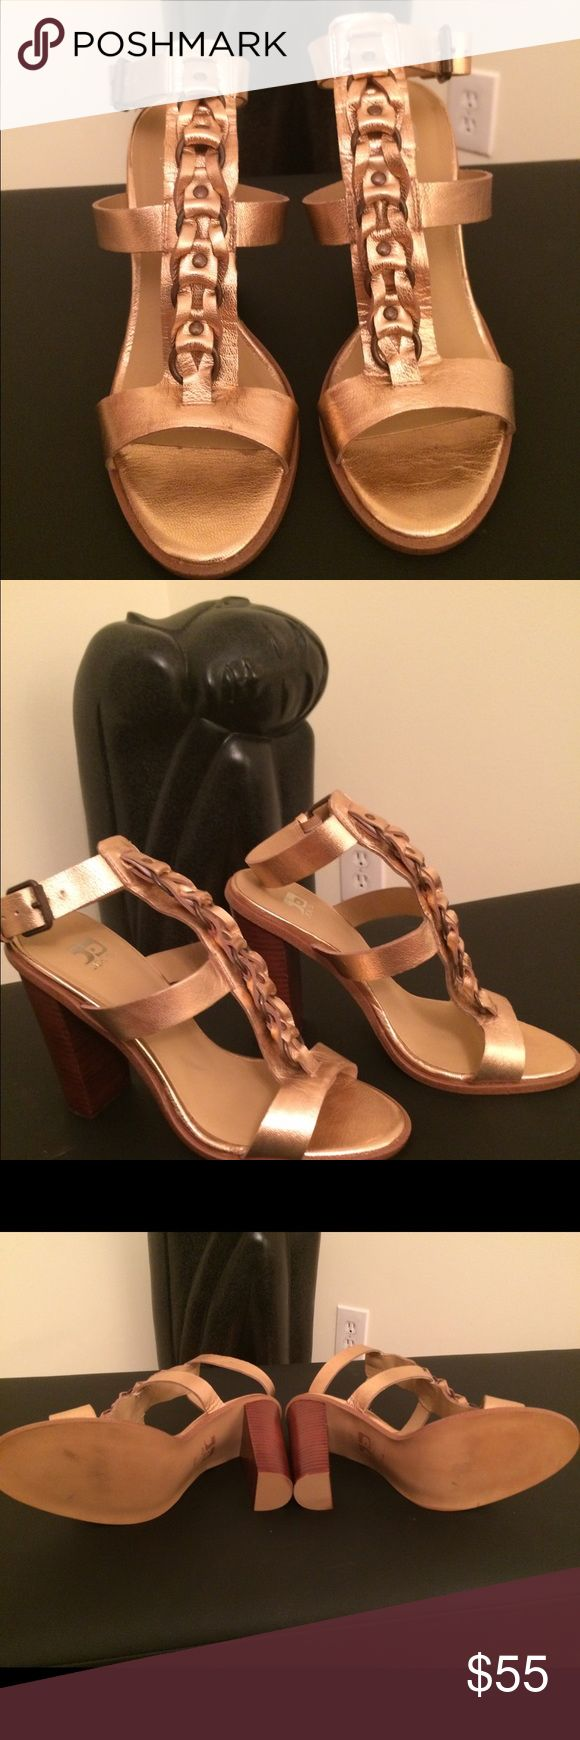 "Shoes by Joe, woven leather in Rosegold. Stylish Sandal in fashionable Rosegold color, ""never worn"" The hottest new color. Although never worn, no tags available. Joes Shoes Sandals"